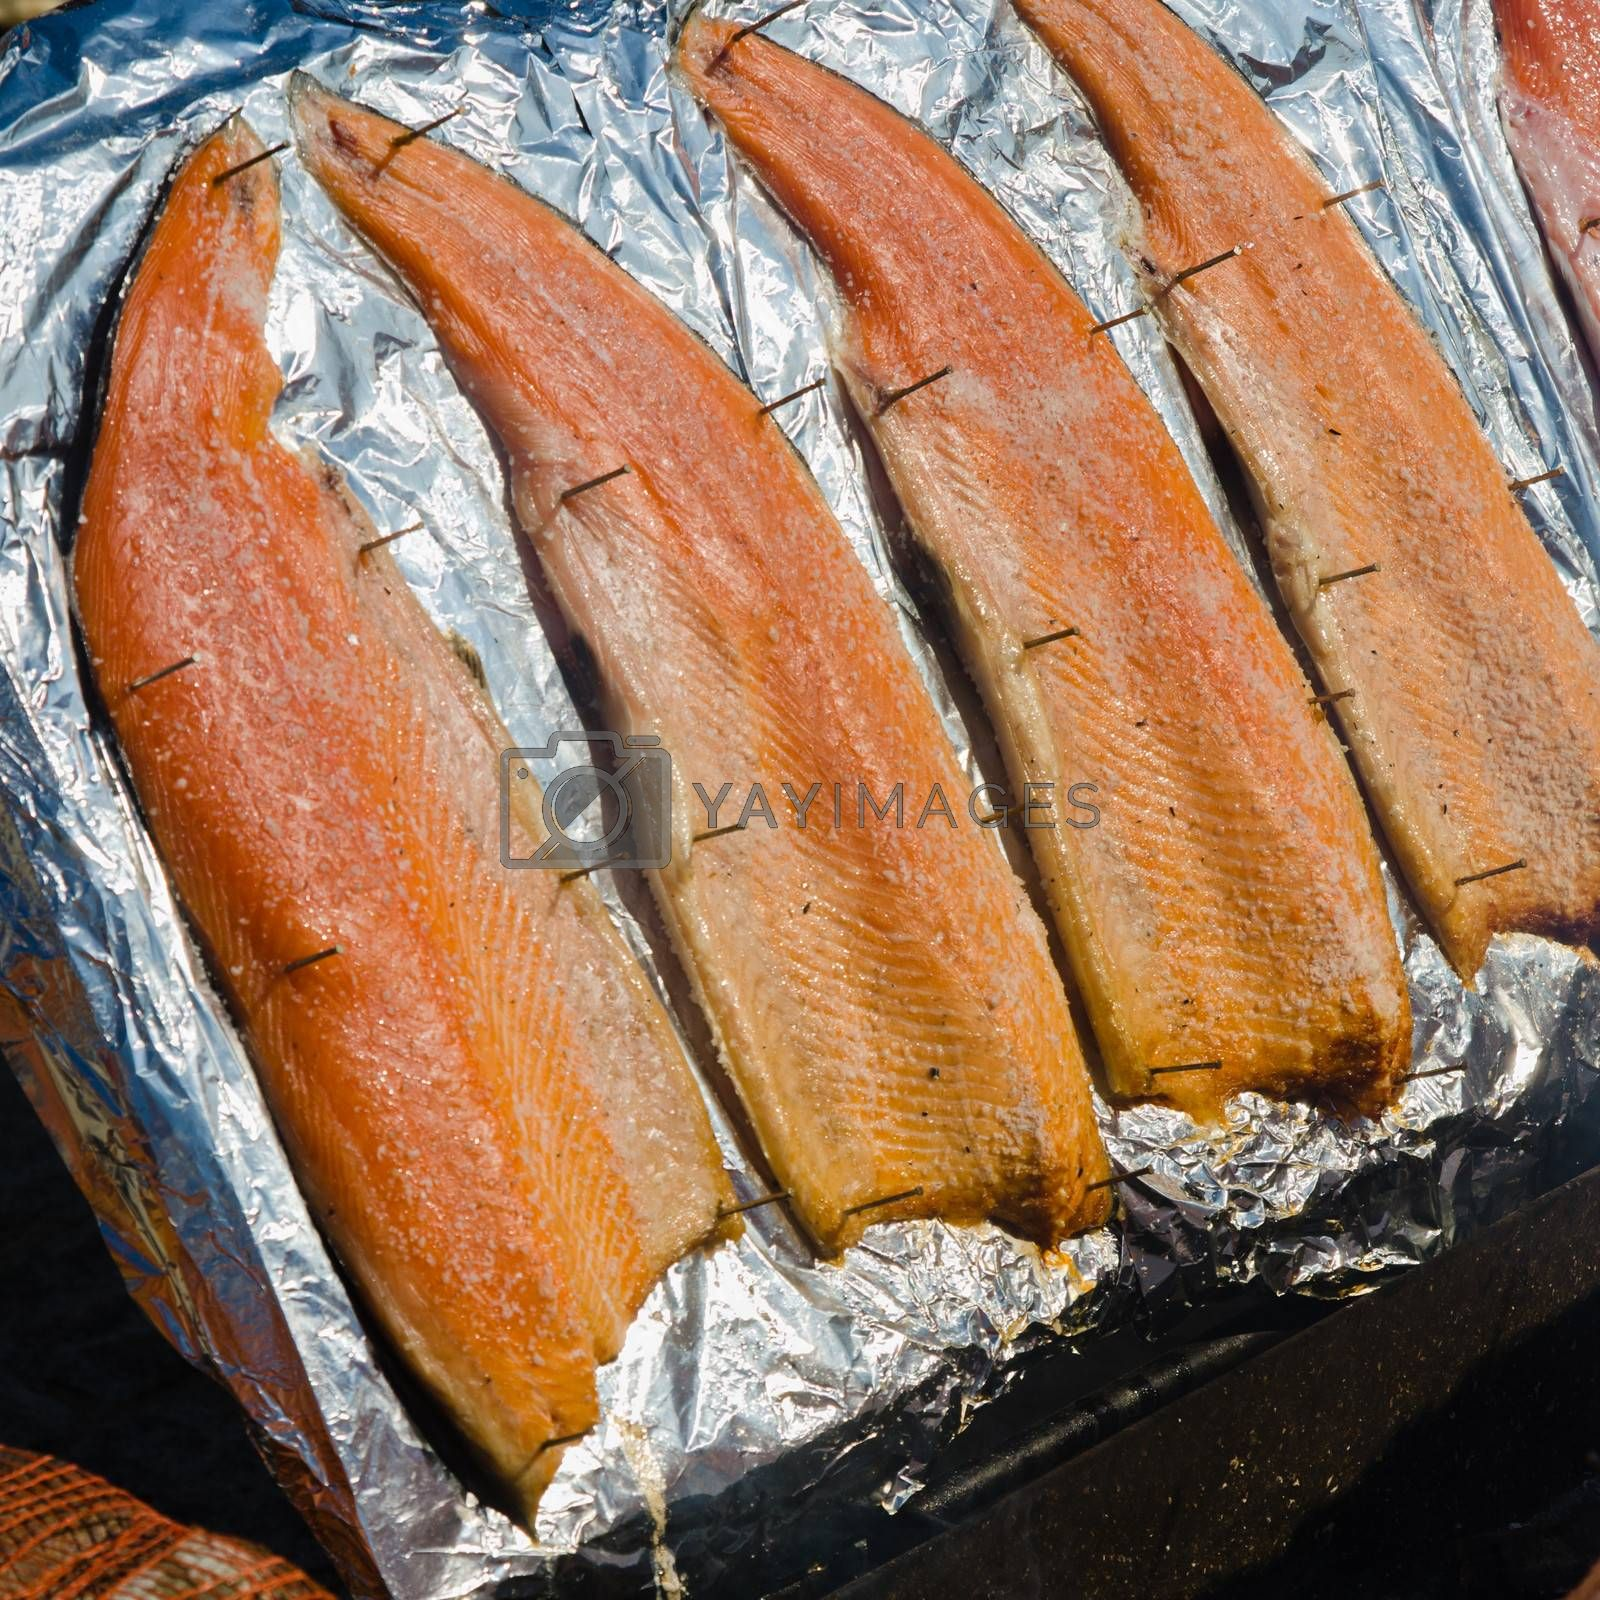 salmon fillet roasted on coals, close-up